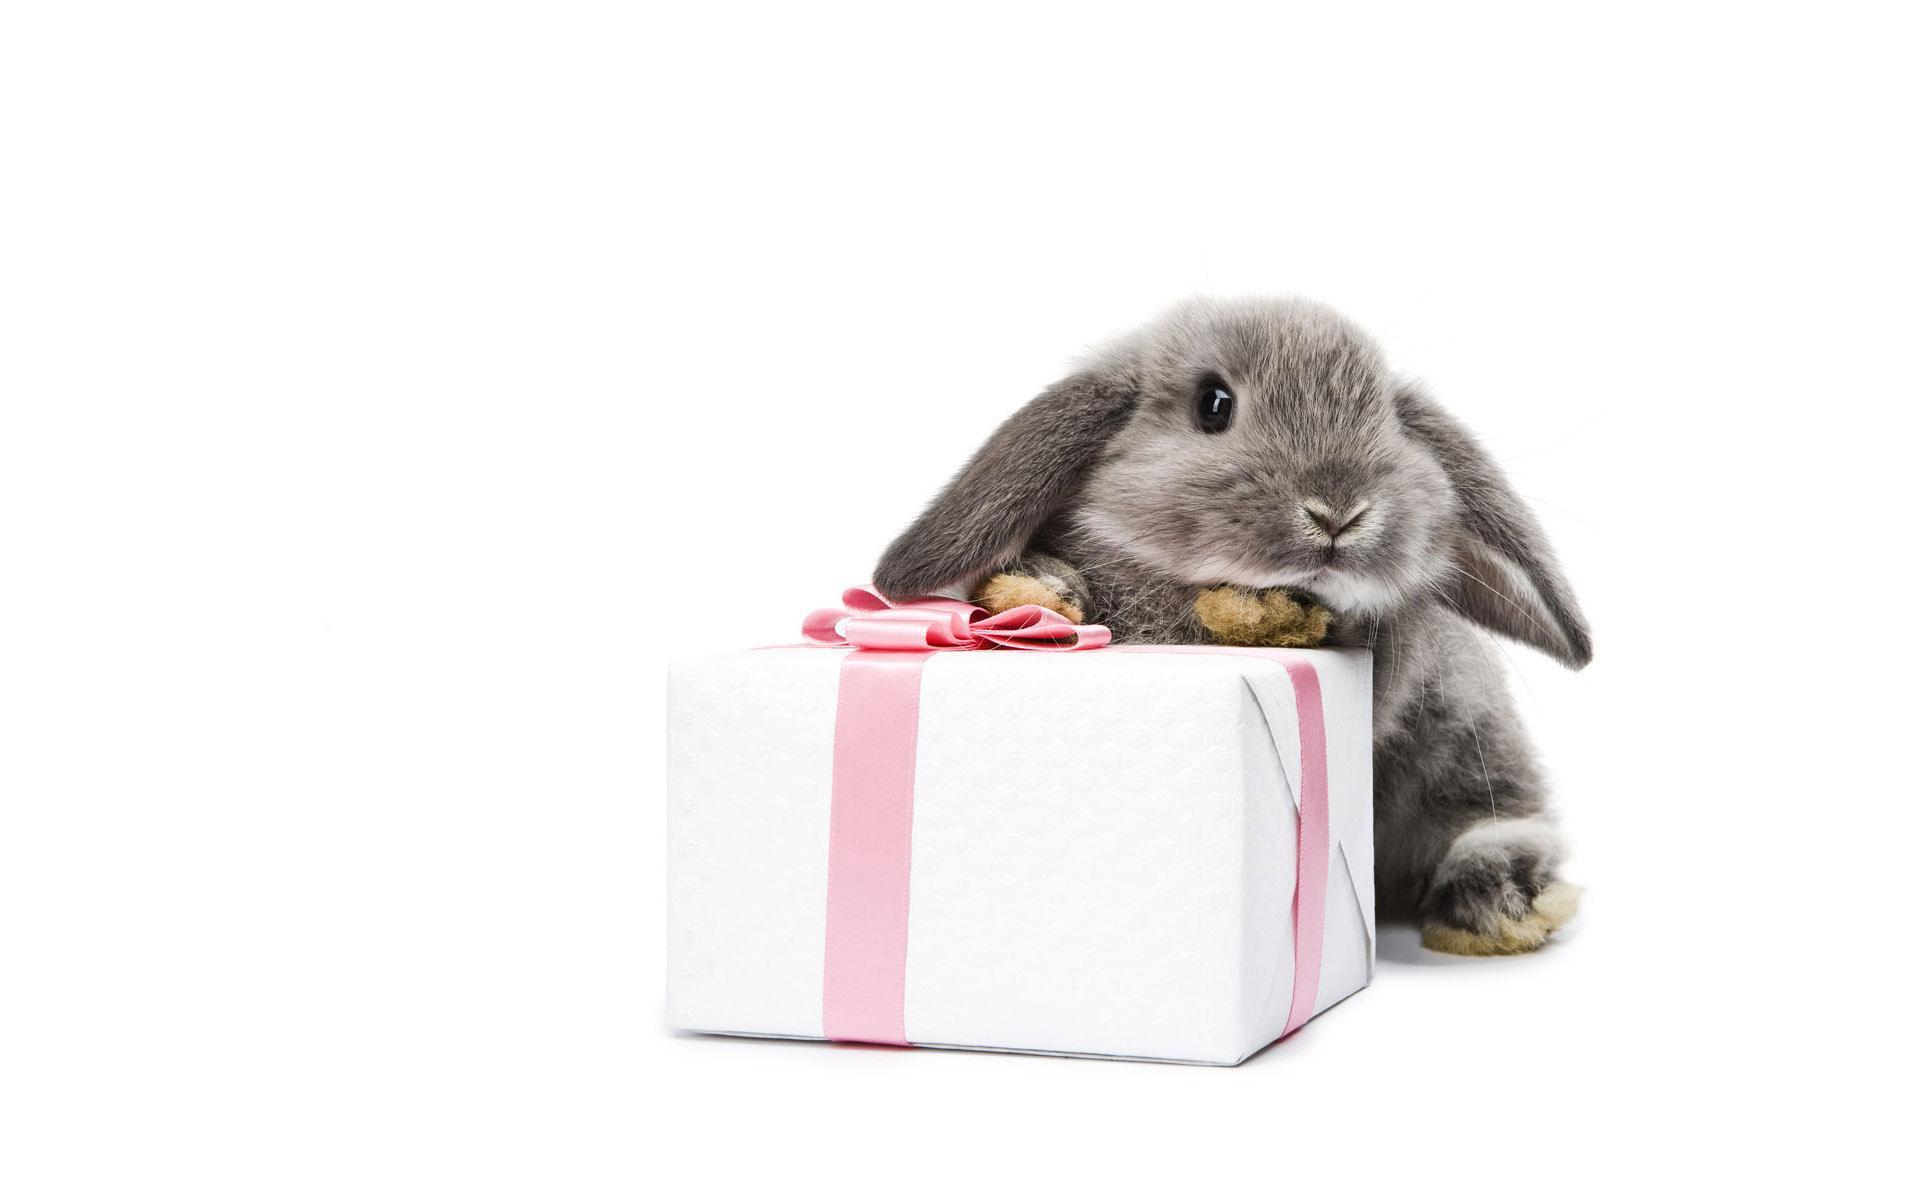 10912 download wallpaper Animals, Rodents, Rabbits screensavers and pictures for free